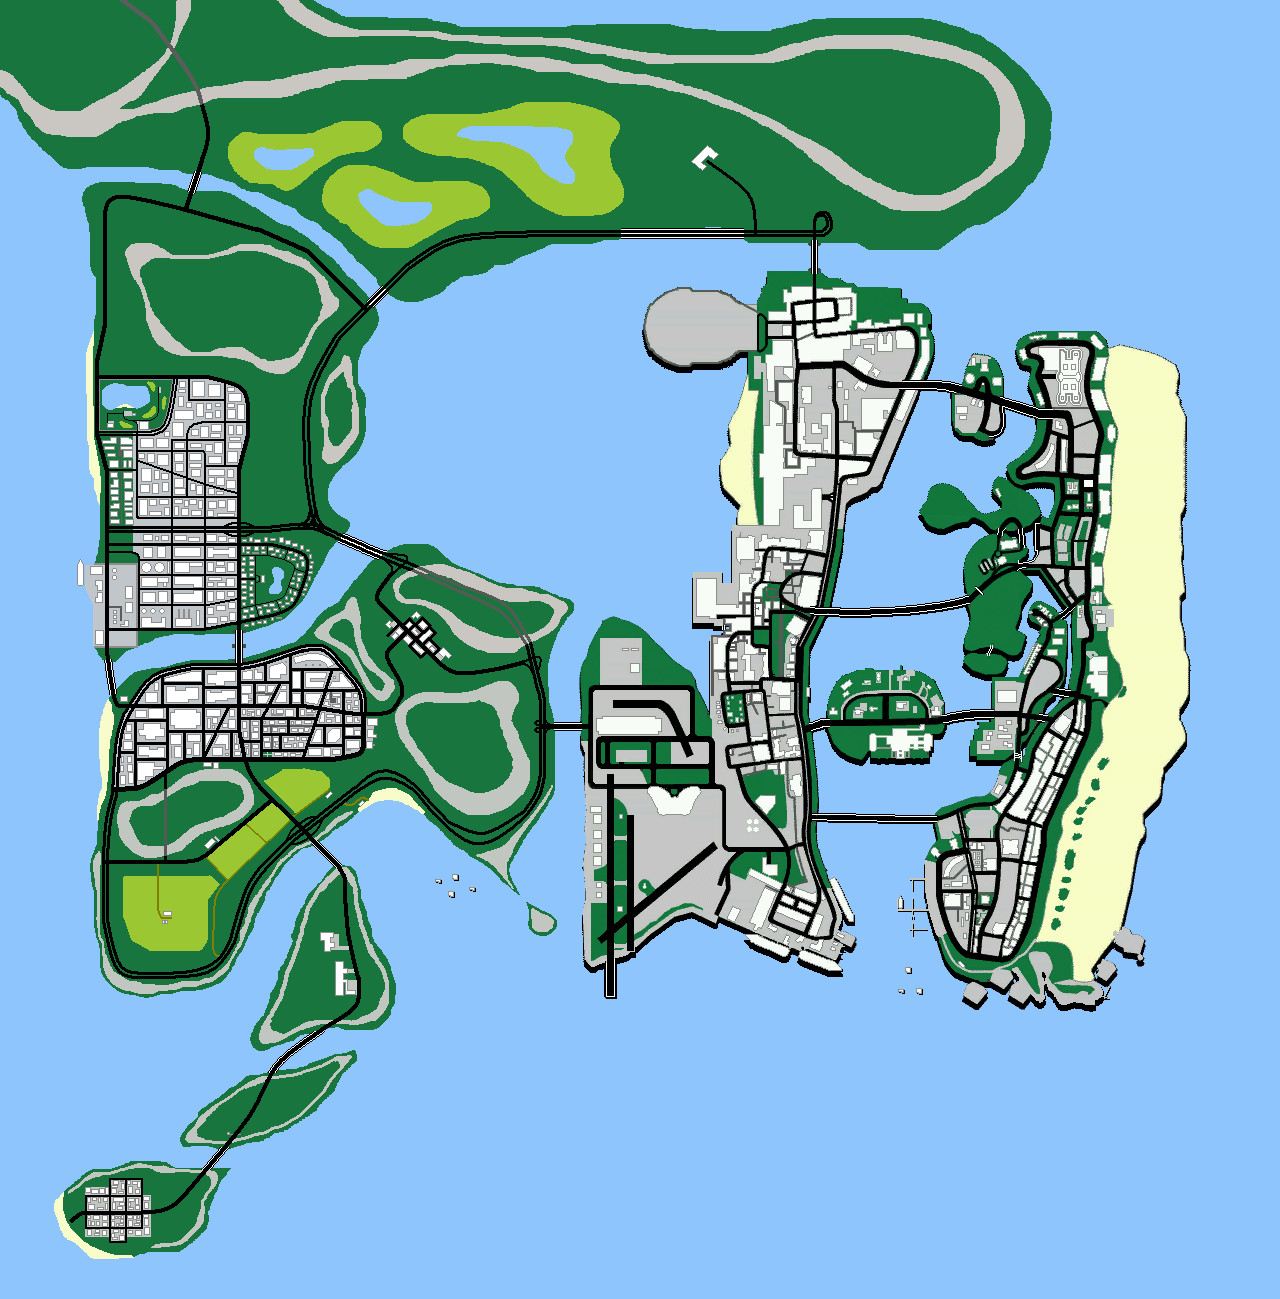 gta_vice_city___extended_map_by_gdn001-d